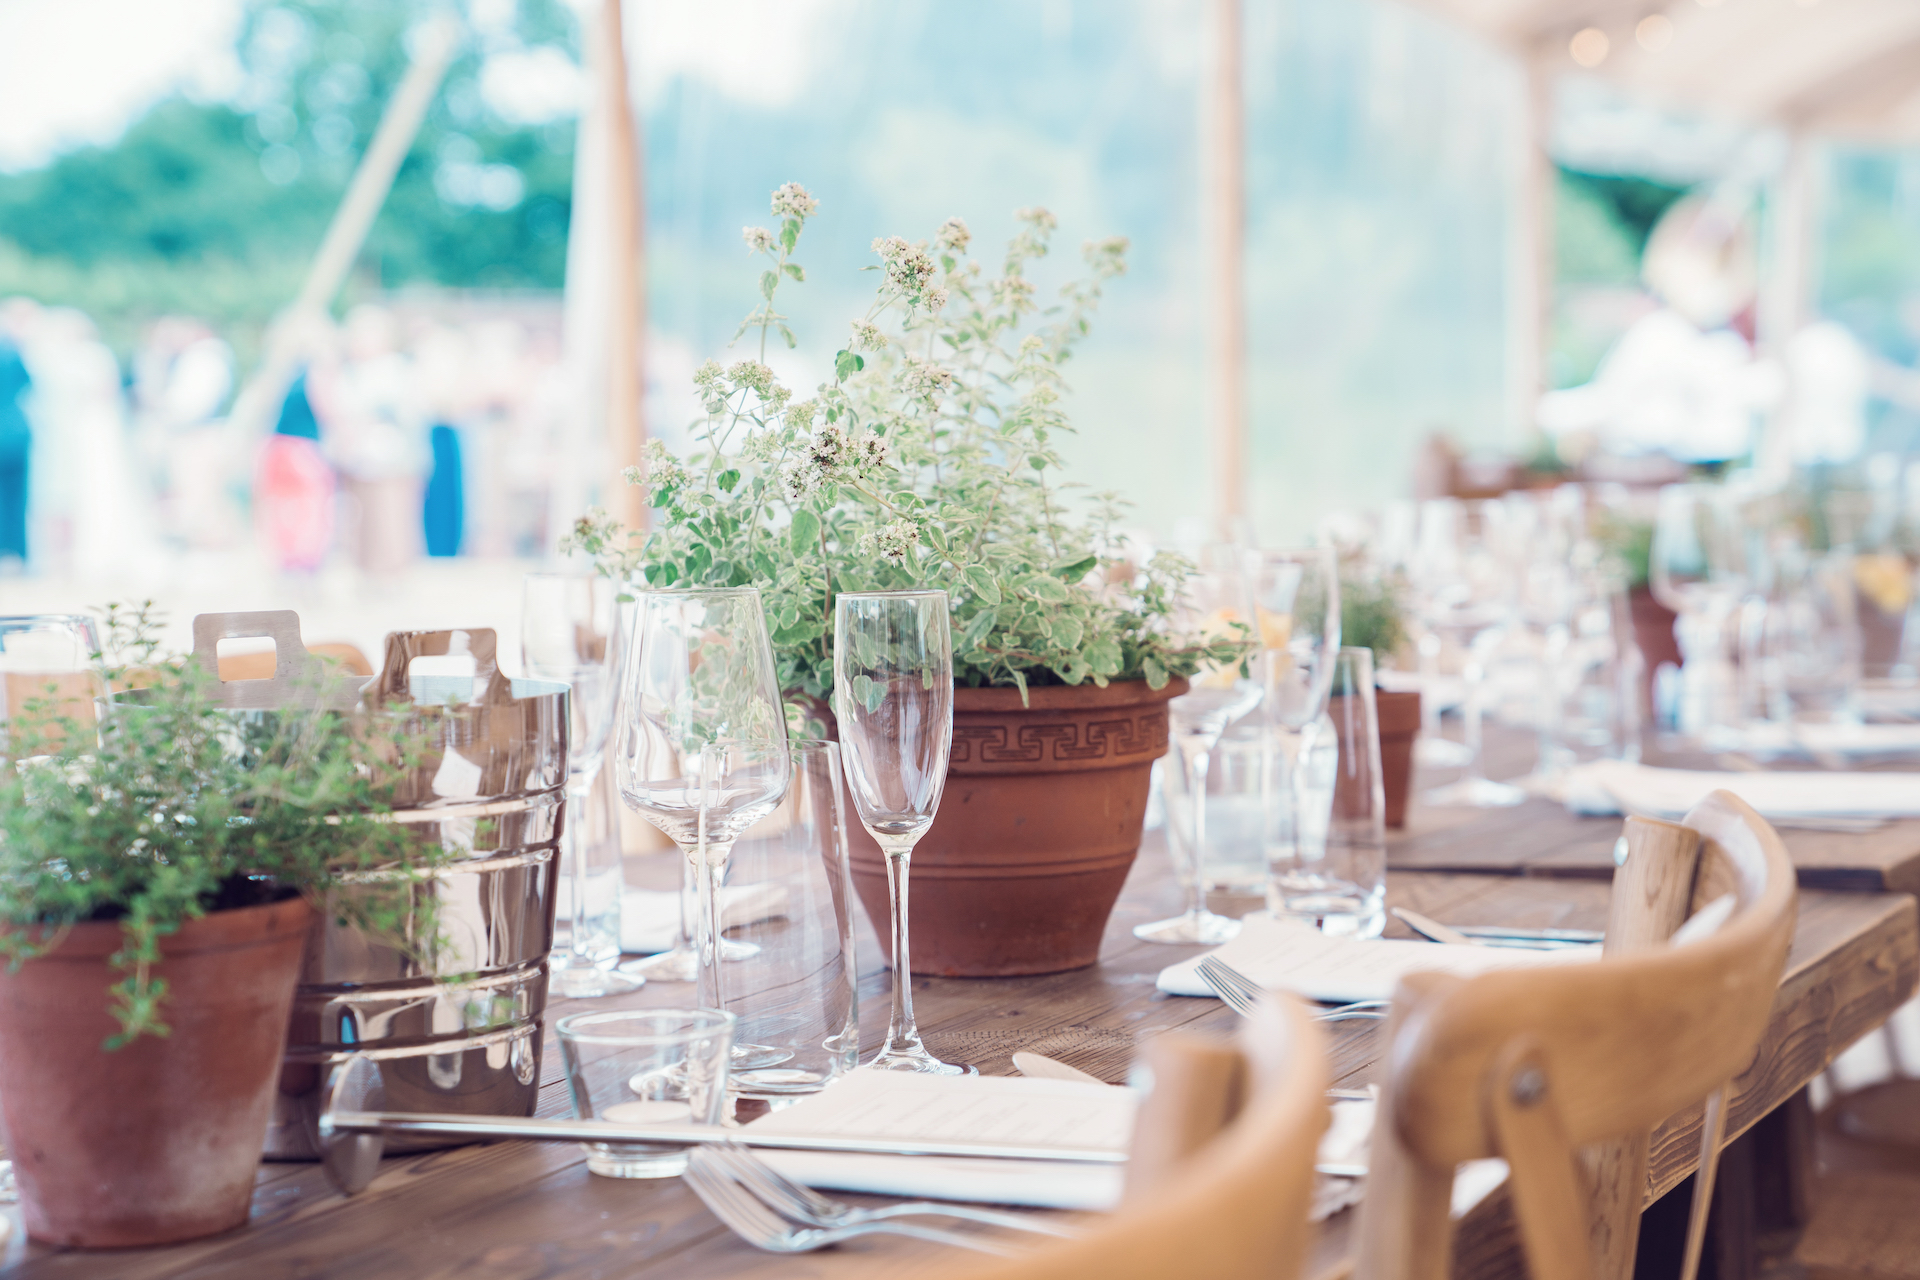 PapaKåta couple Louise & Alex's Sperry Wedding at Elford Hall Garden, Staffordshire captured by Jessica Raphael Photography- Pretty potted blooms by Emily Wisher